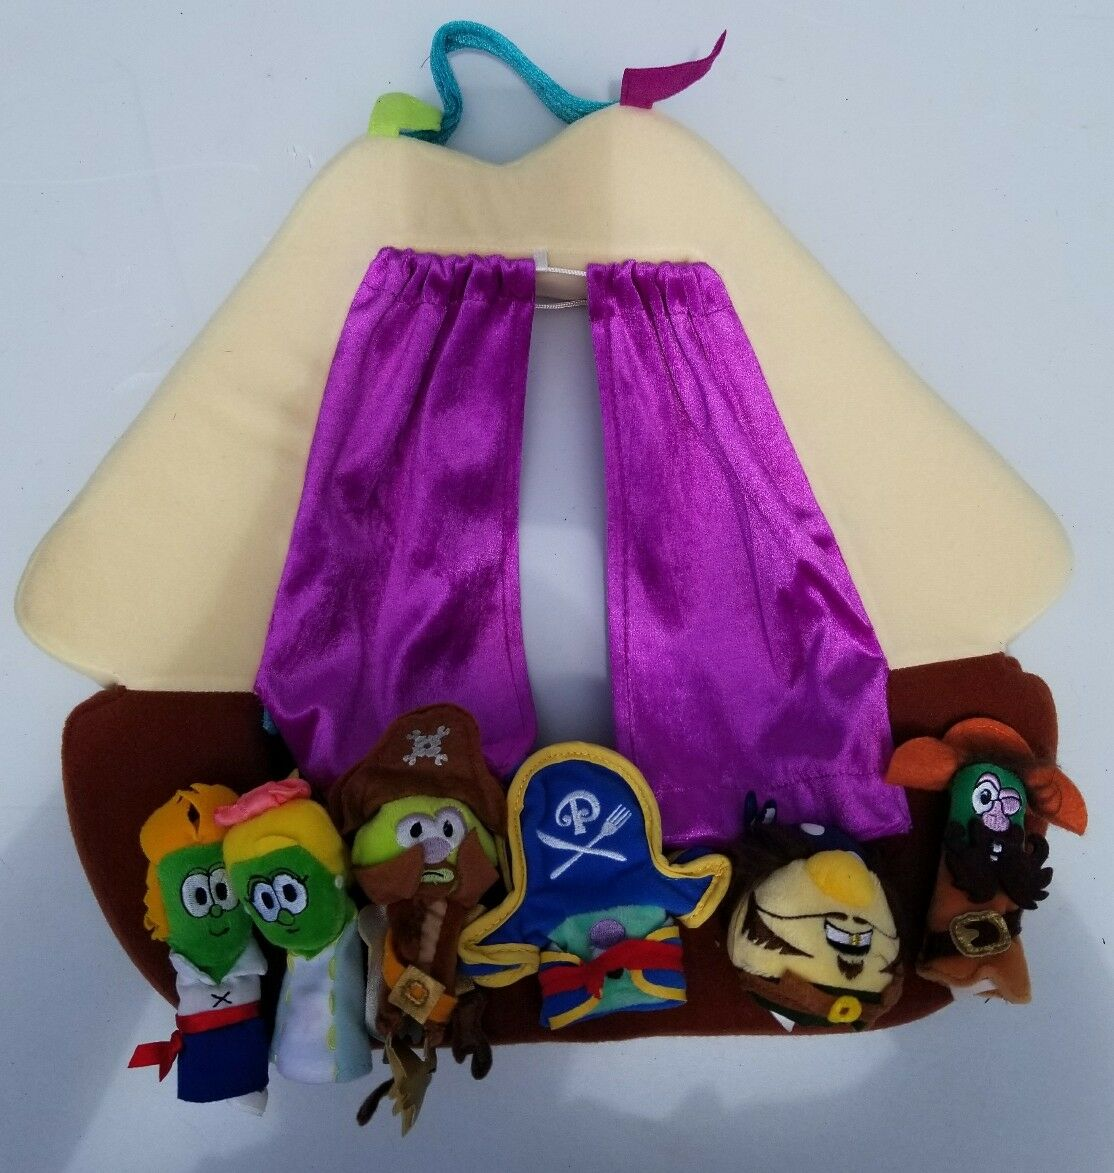 Manhattan Toy Veggie Tales 6 Finger Puppets and Plush Theater Stage VHTF Pirates